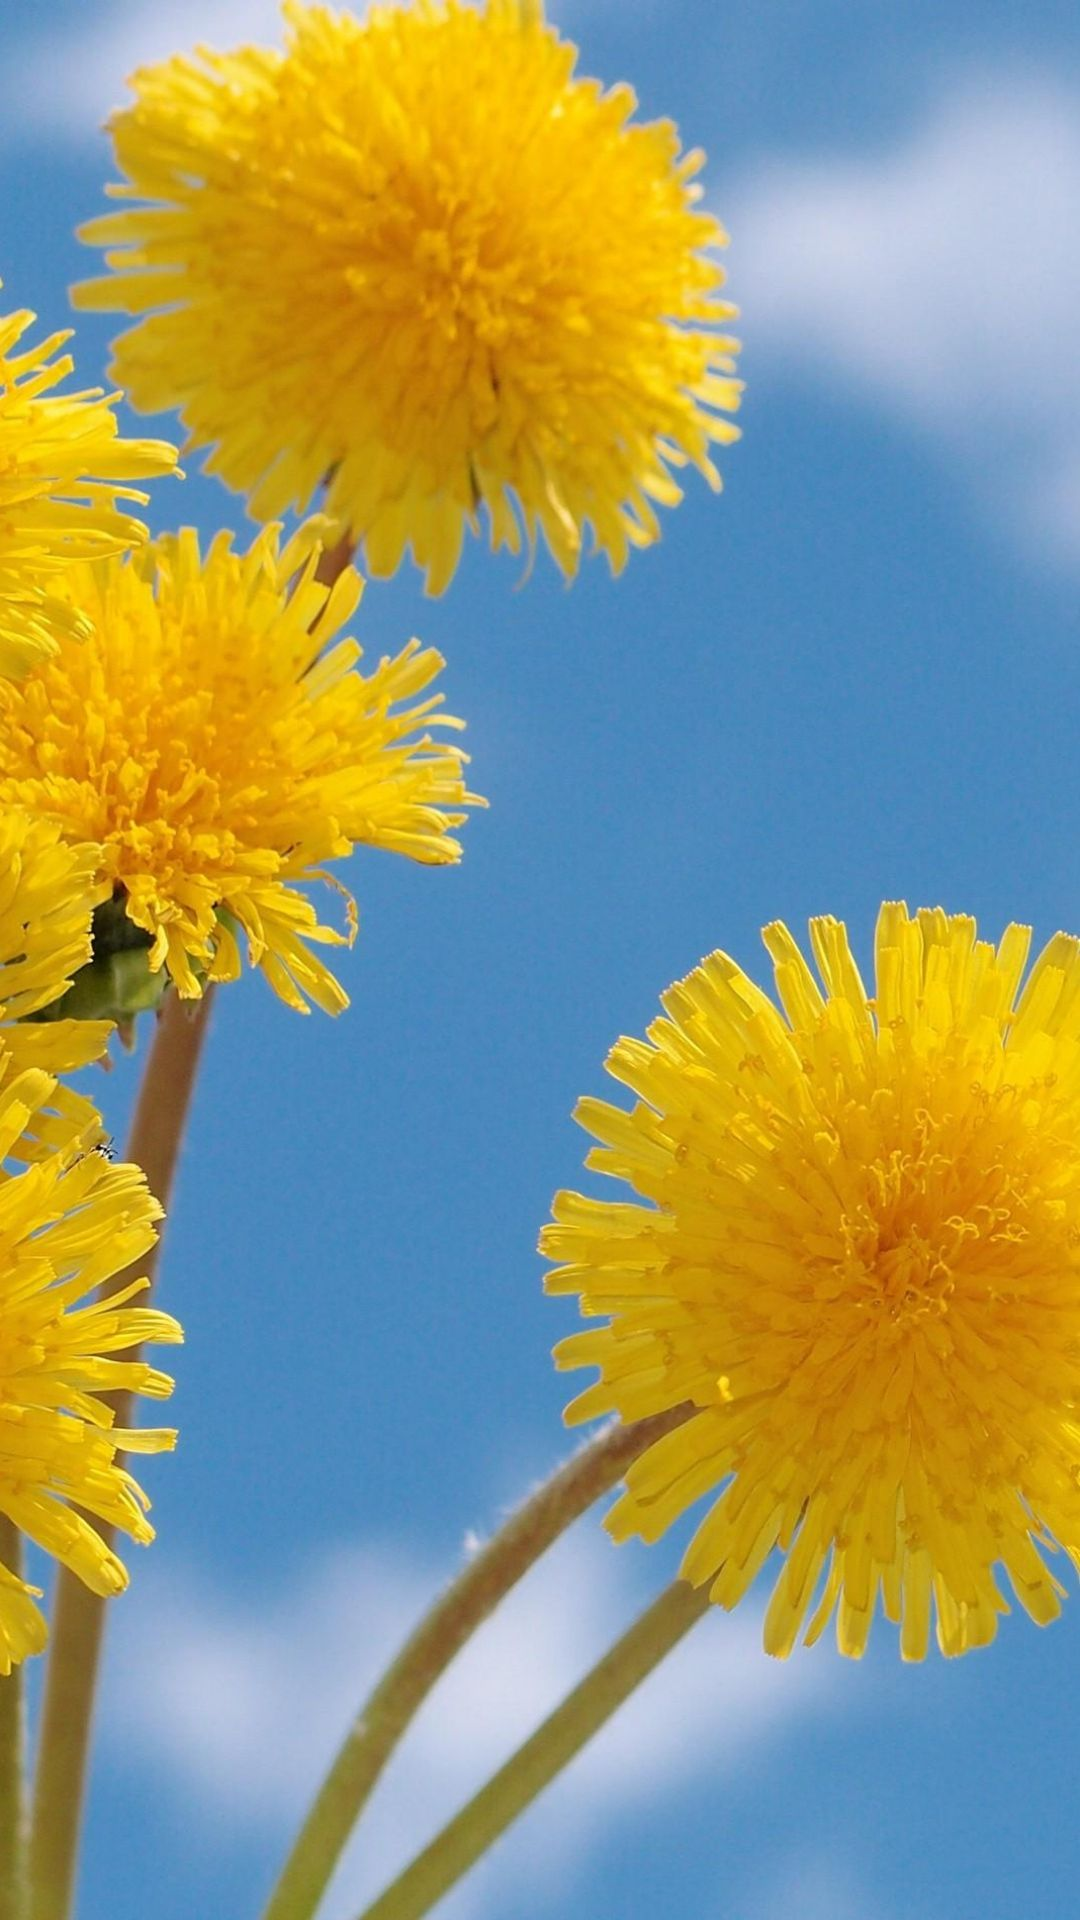 Pin By Doris Matick On Color My World Beautiful Flowers Wallpapers Beautiful Flowers Dandelion